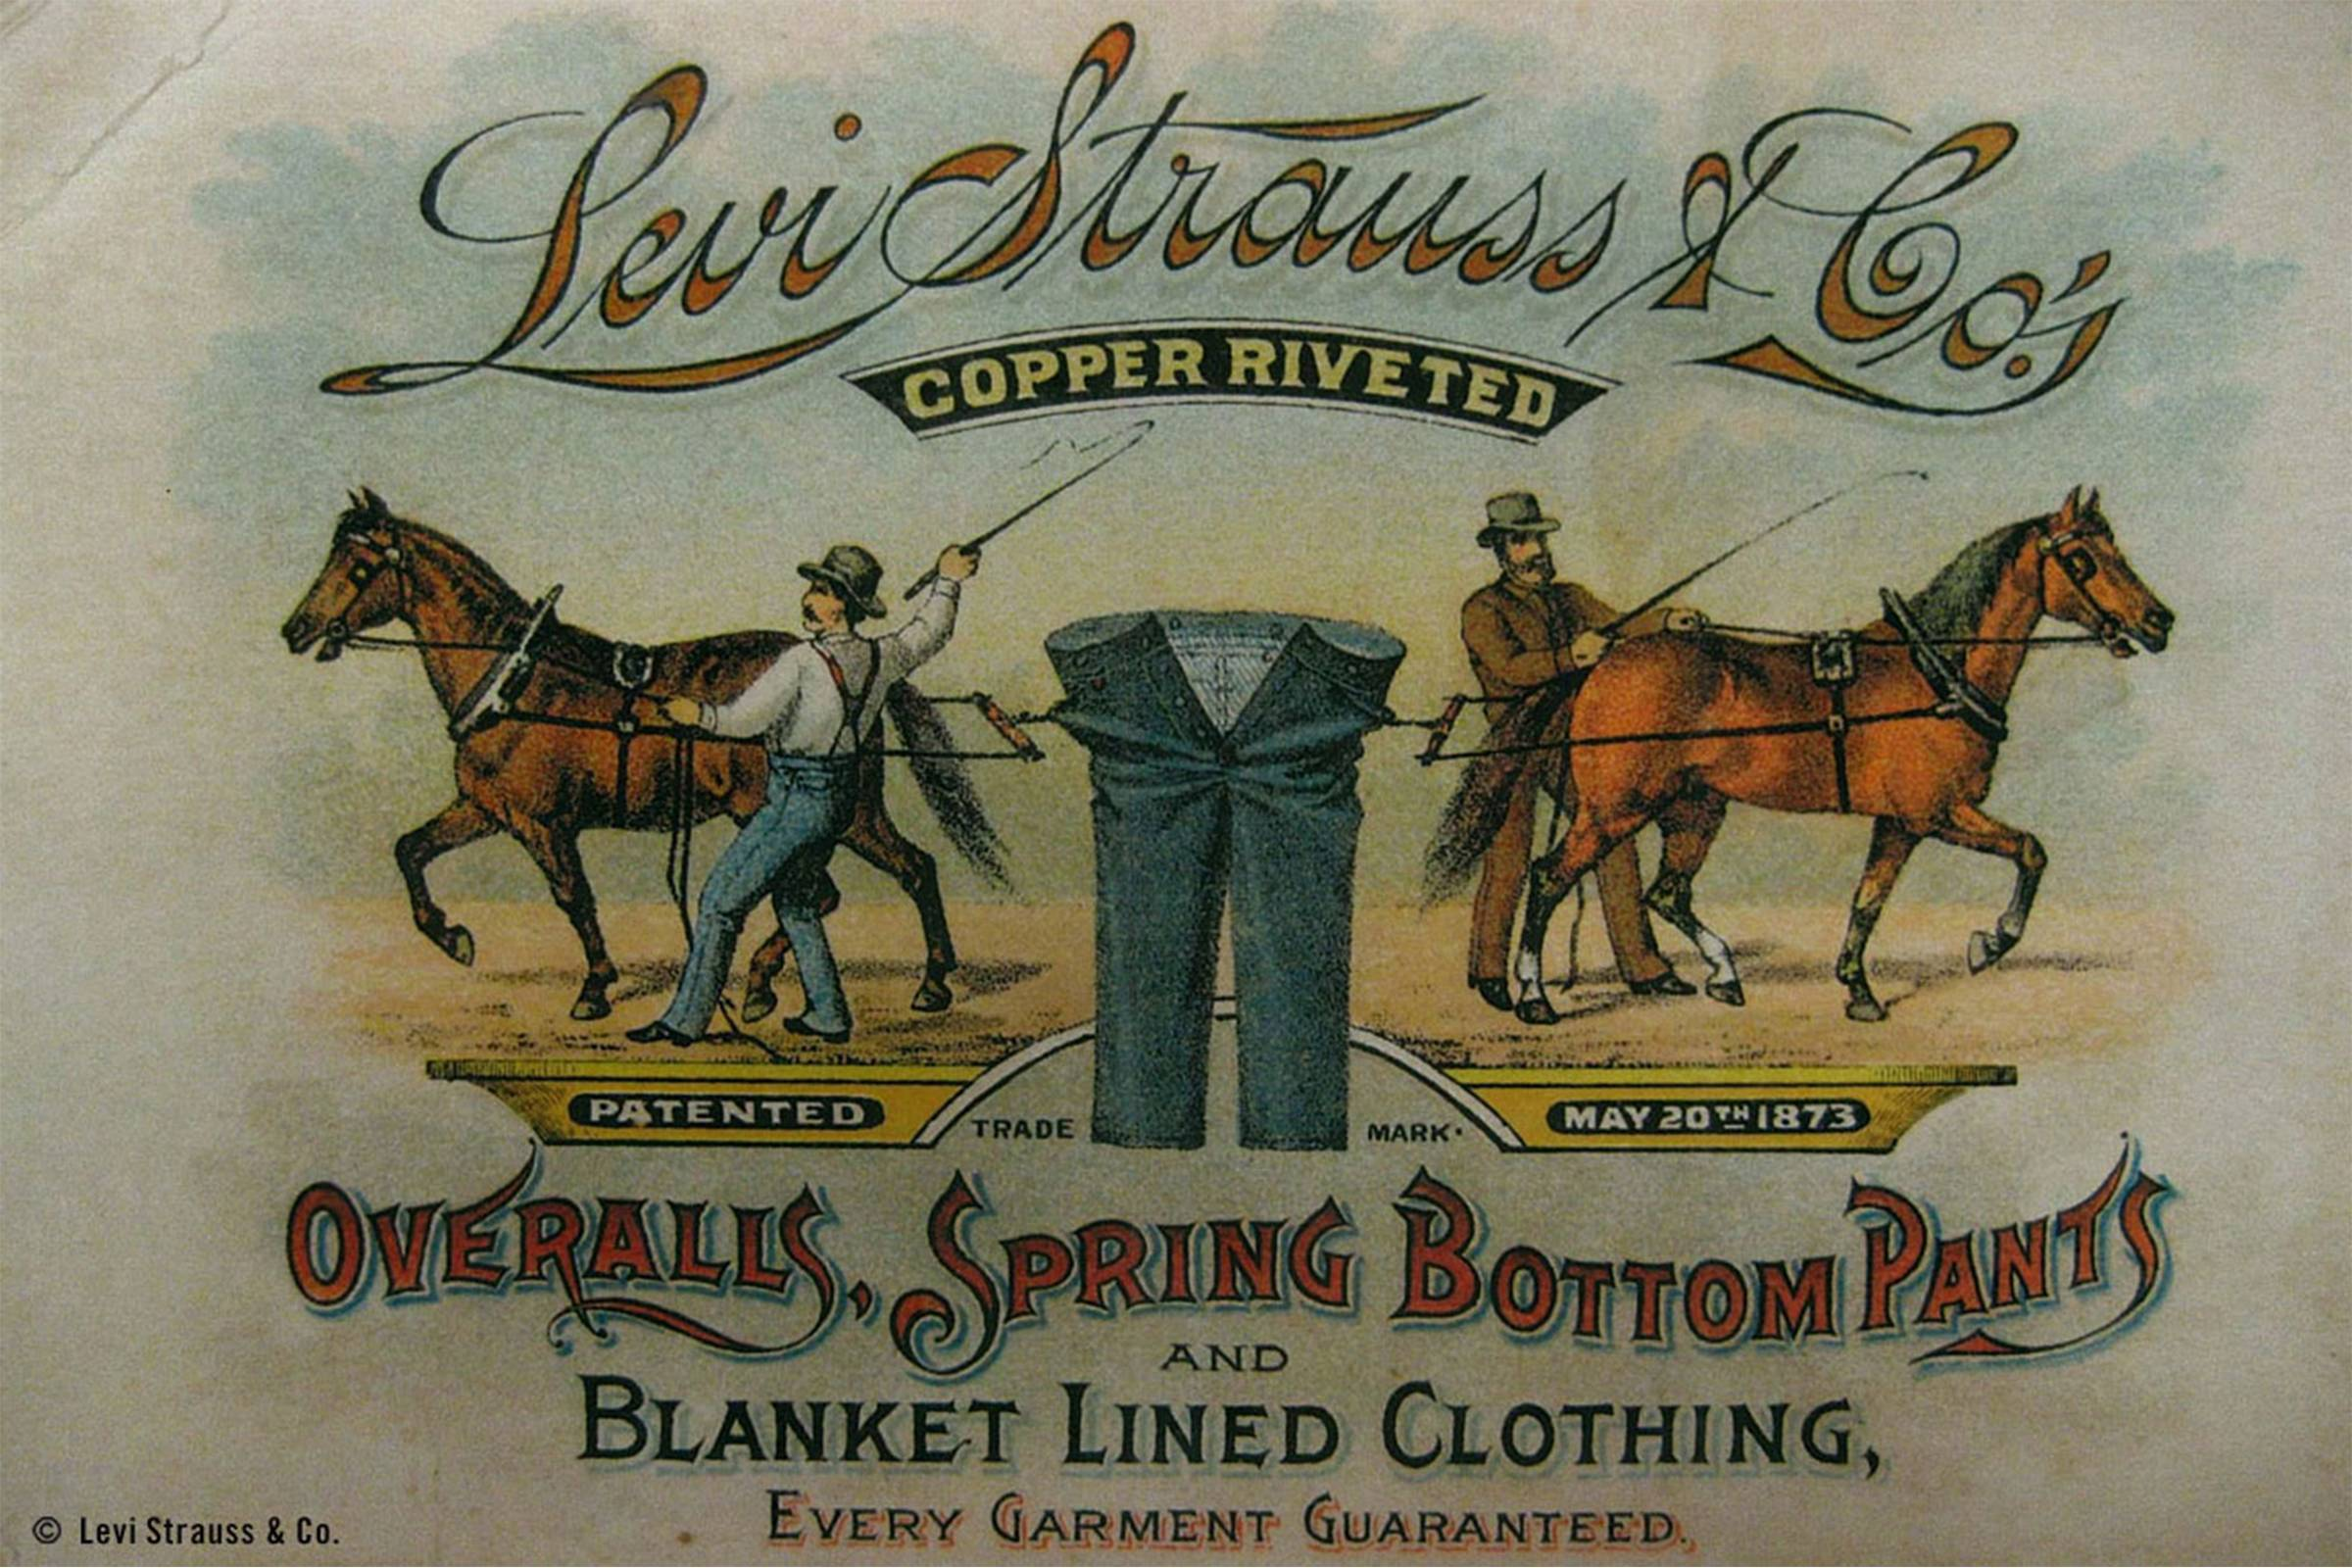 Early 1900s Levi Strauss & Co printed advertisement